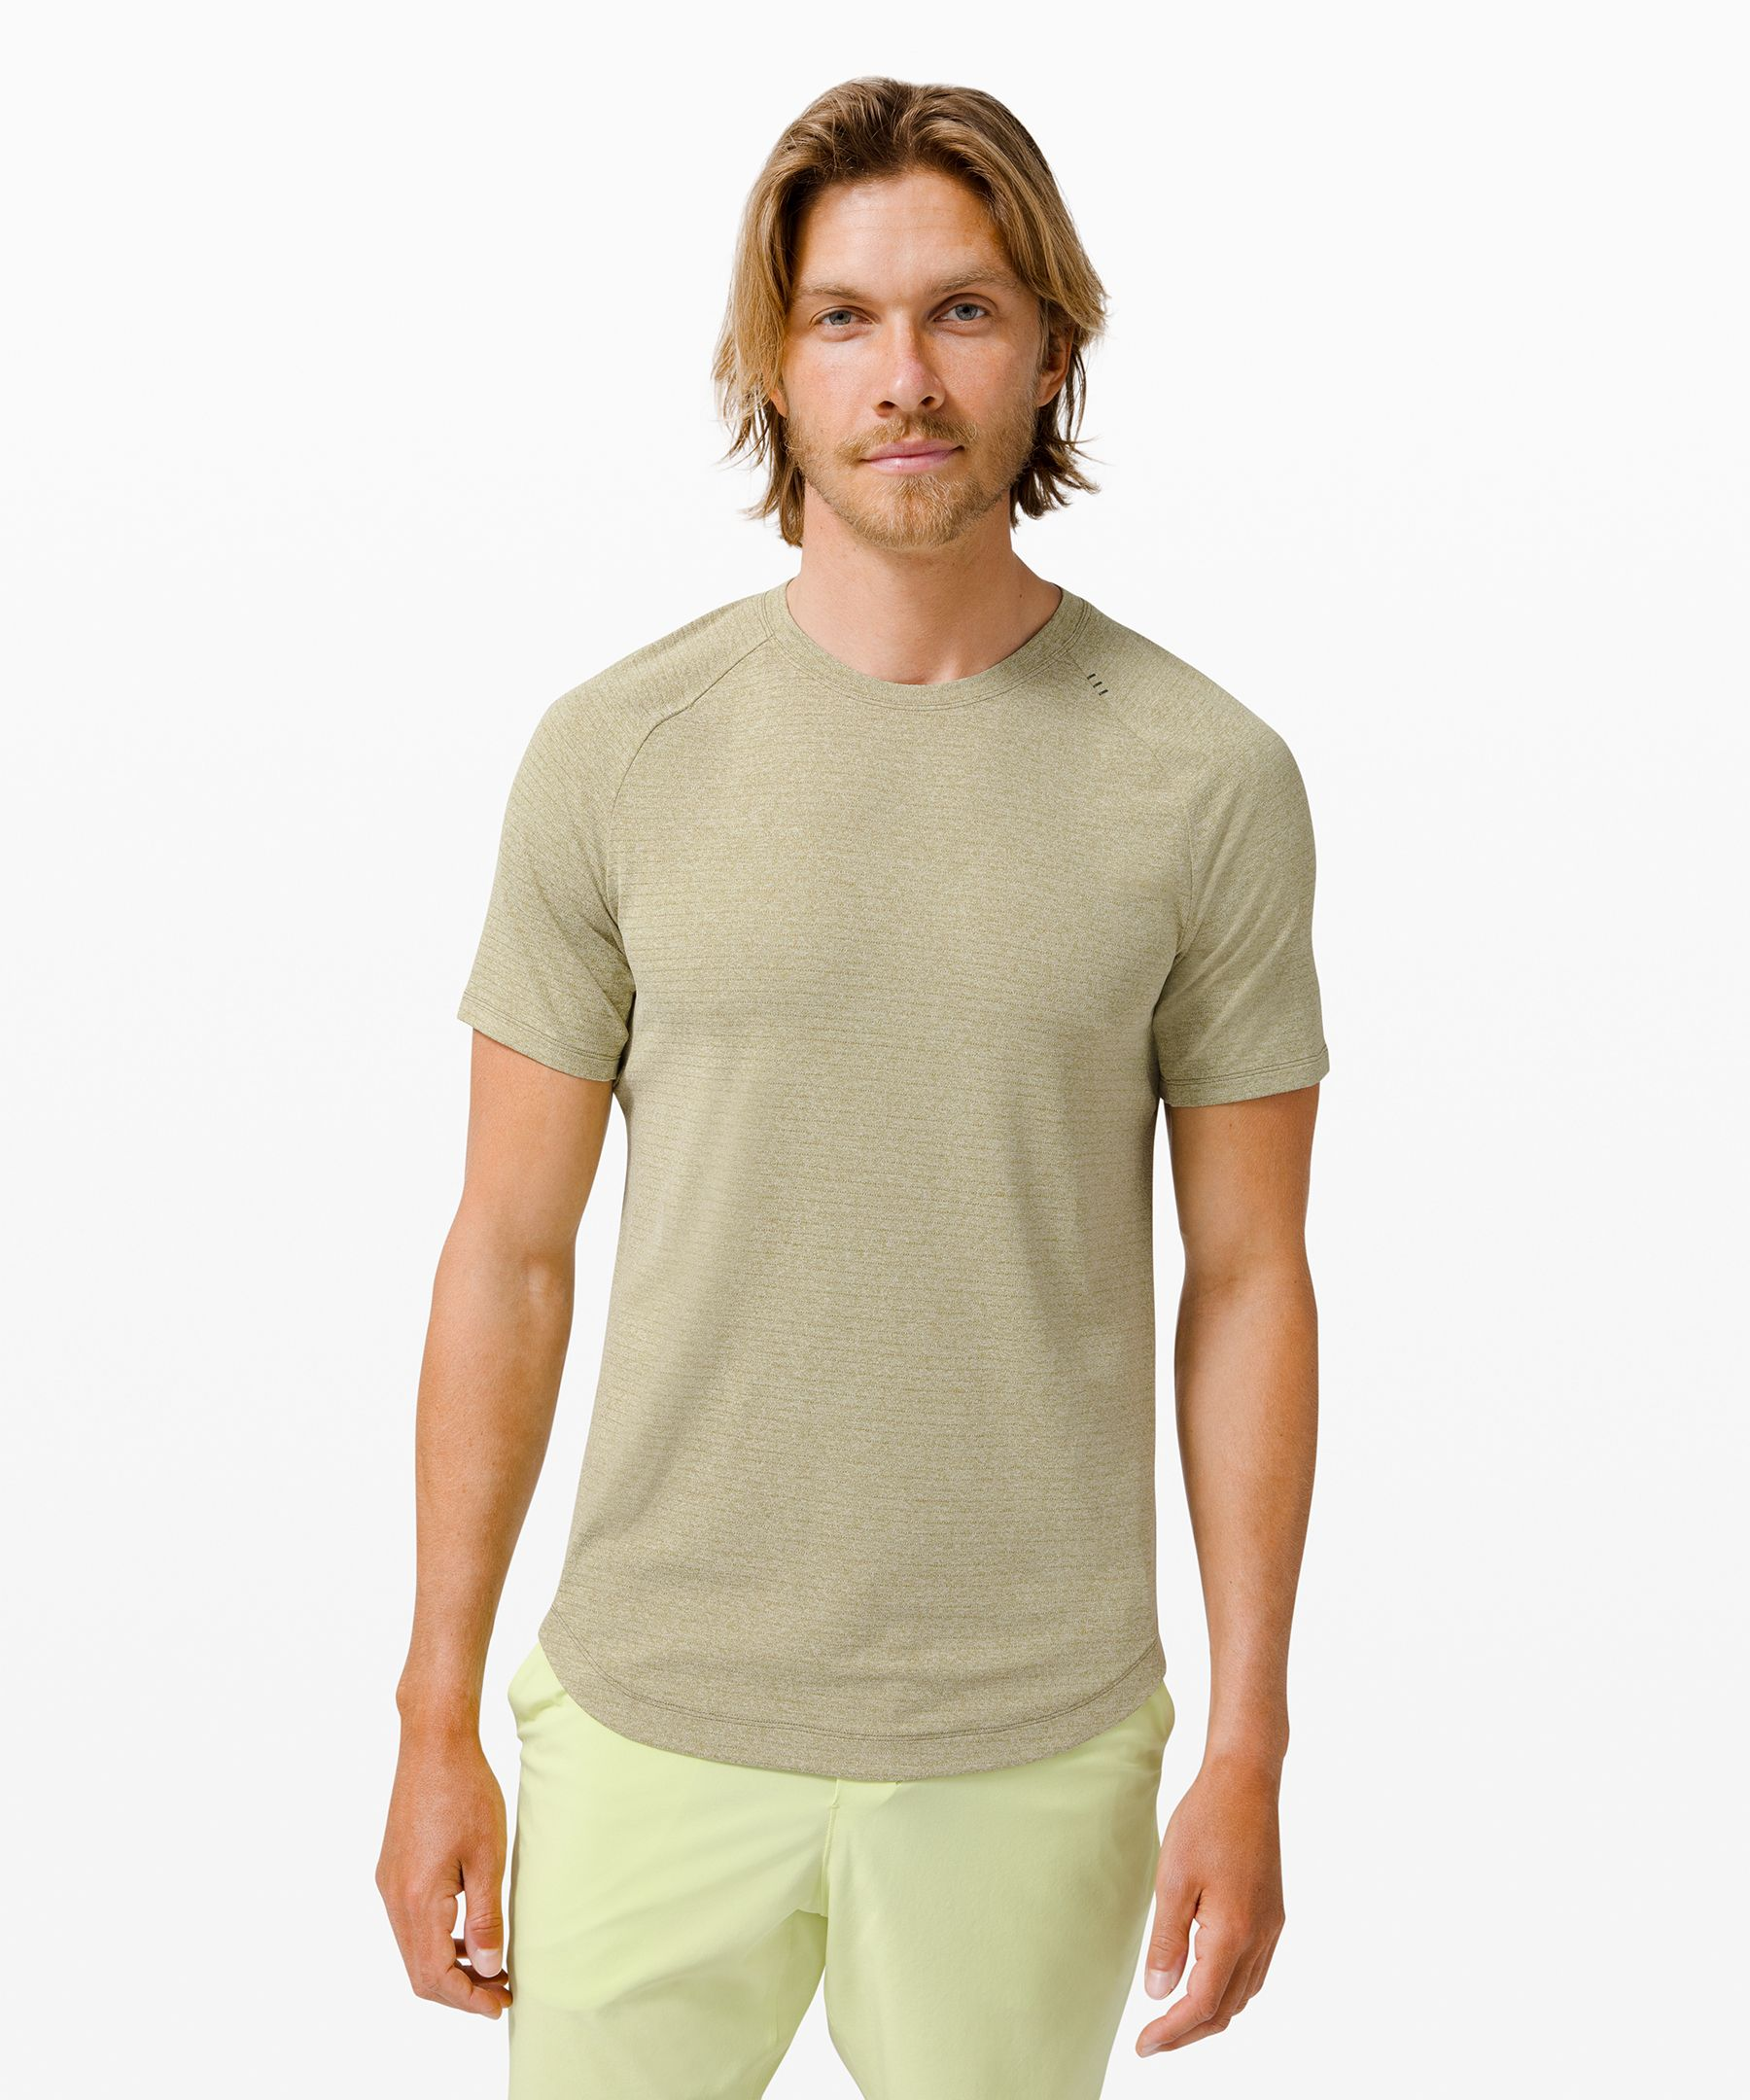 Break a sweat. This short sleeve\\\'s mesh fabric has been developed to feel good against sweaty skin.